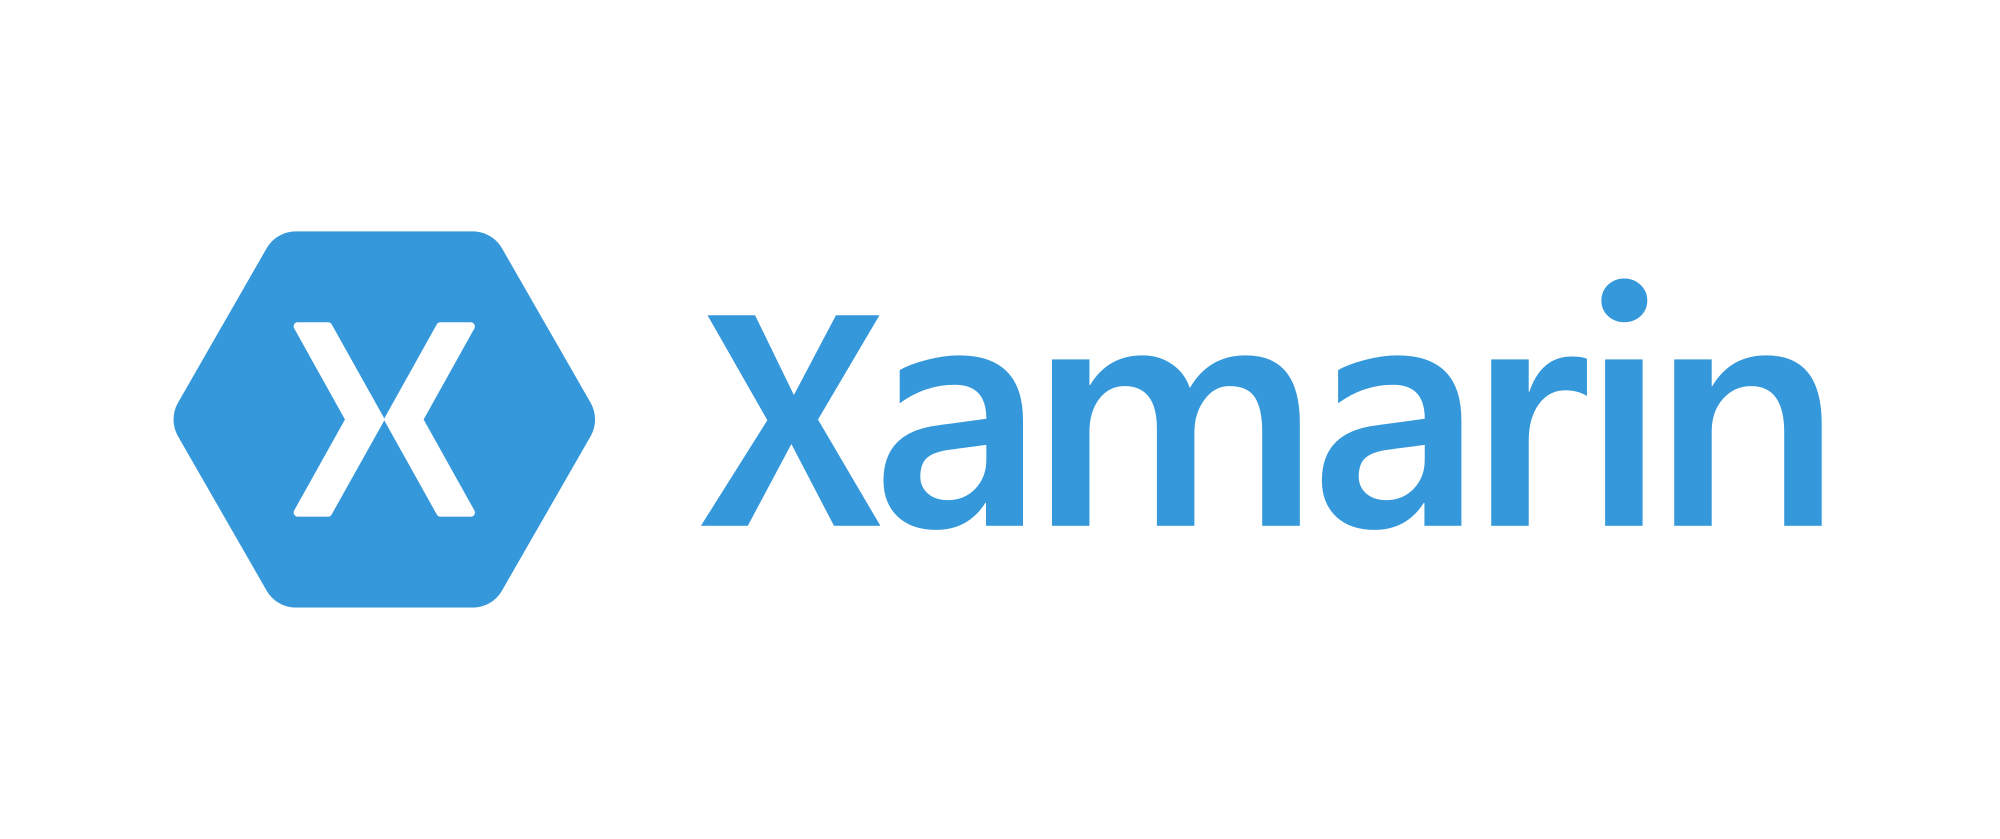 Xamarin Libraries Considered